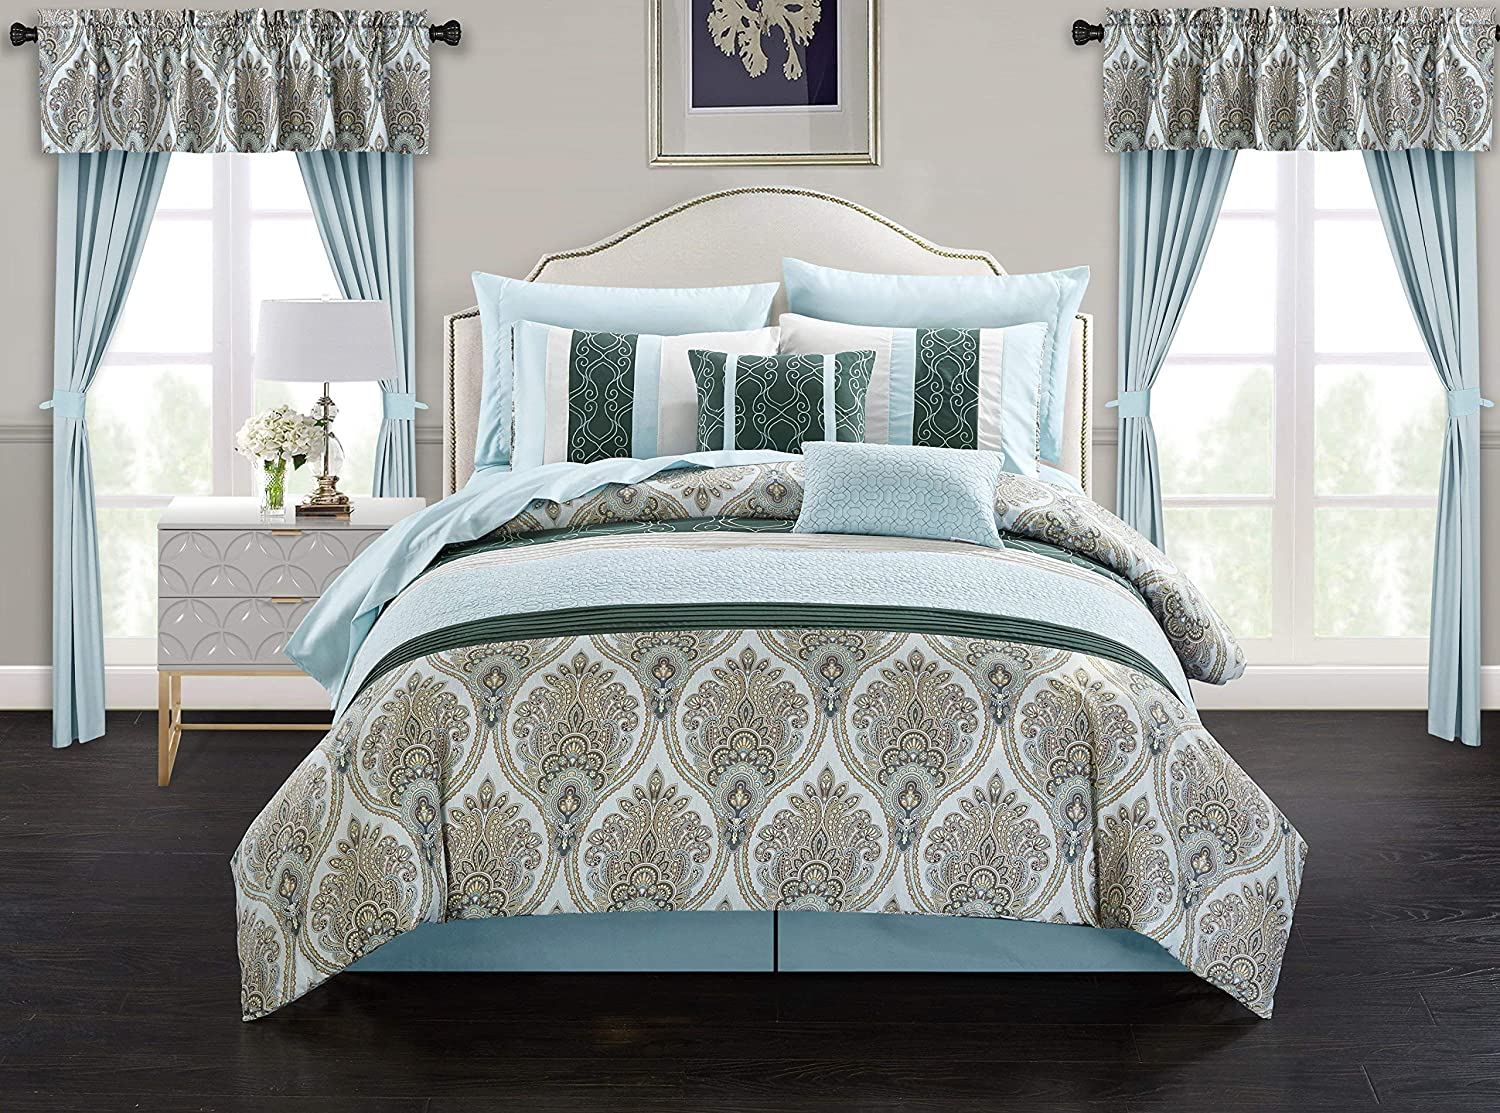 Chic Home Vivaldi 20 Piece Comforter Set Medallion Quilted Embroidered Design Complete Bag Bedding, King, Green